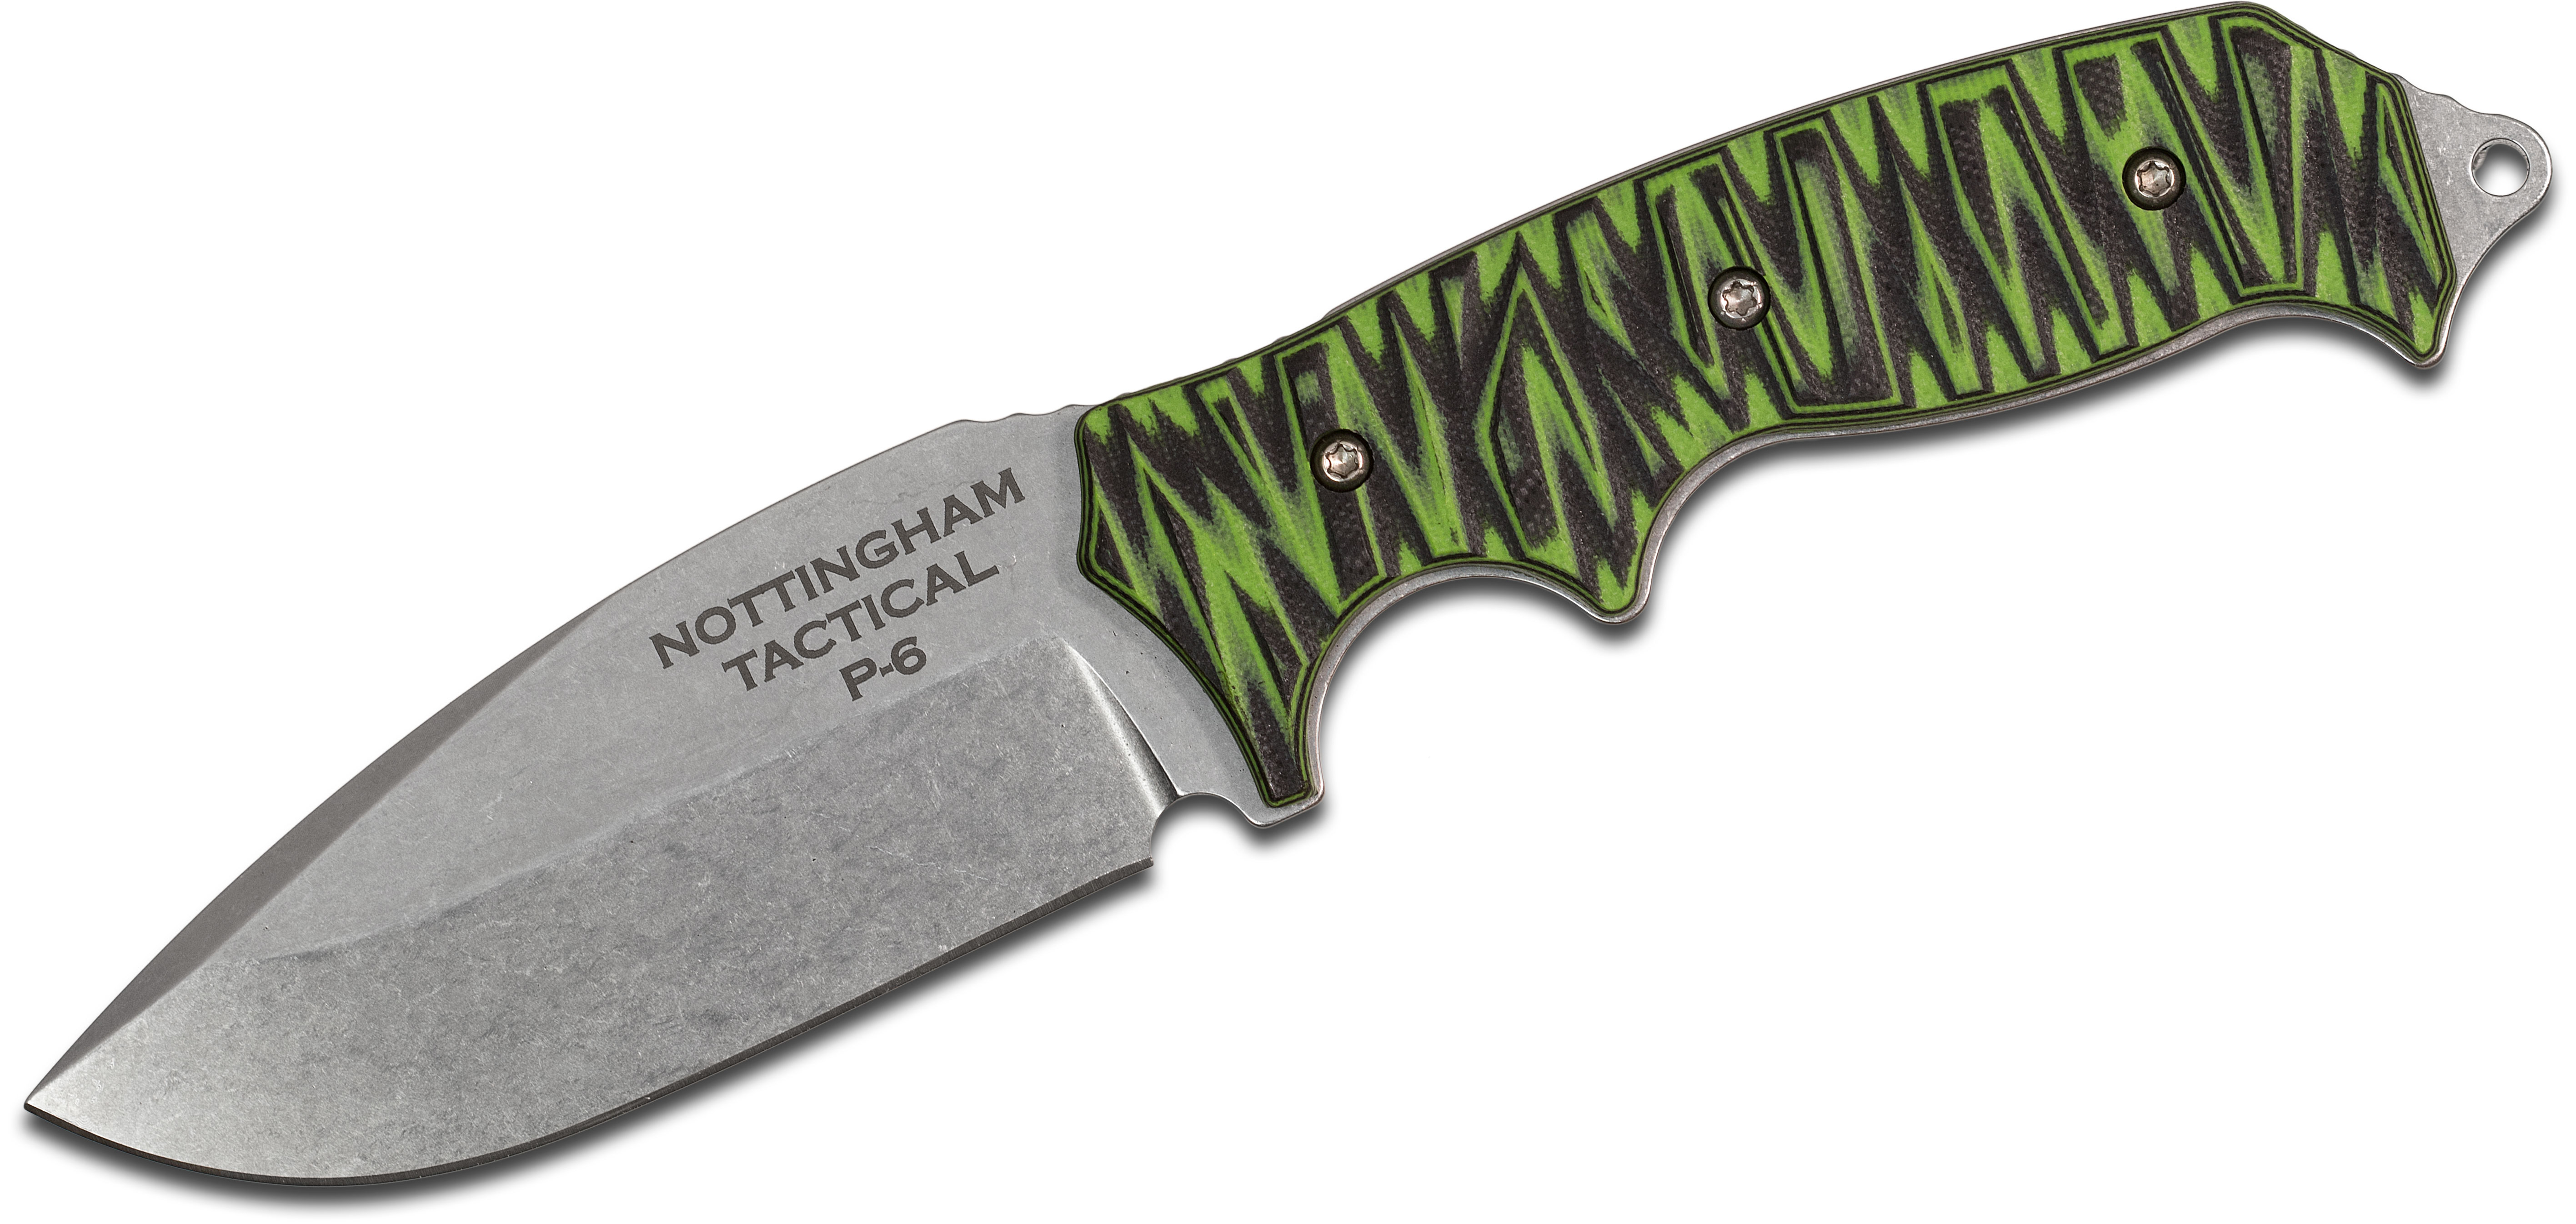 Nottingham Tactical P6 Fixed 4 inch Stonewashed CPM-154 Blade, Milled Green/Black G10 Handles, Kydex Sheath